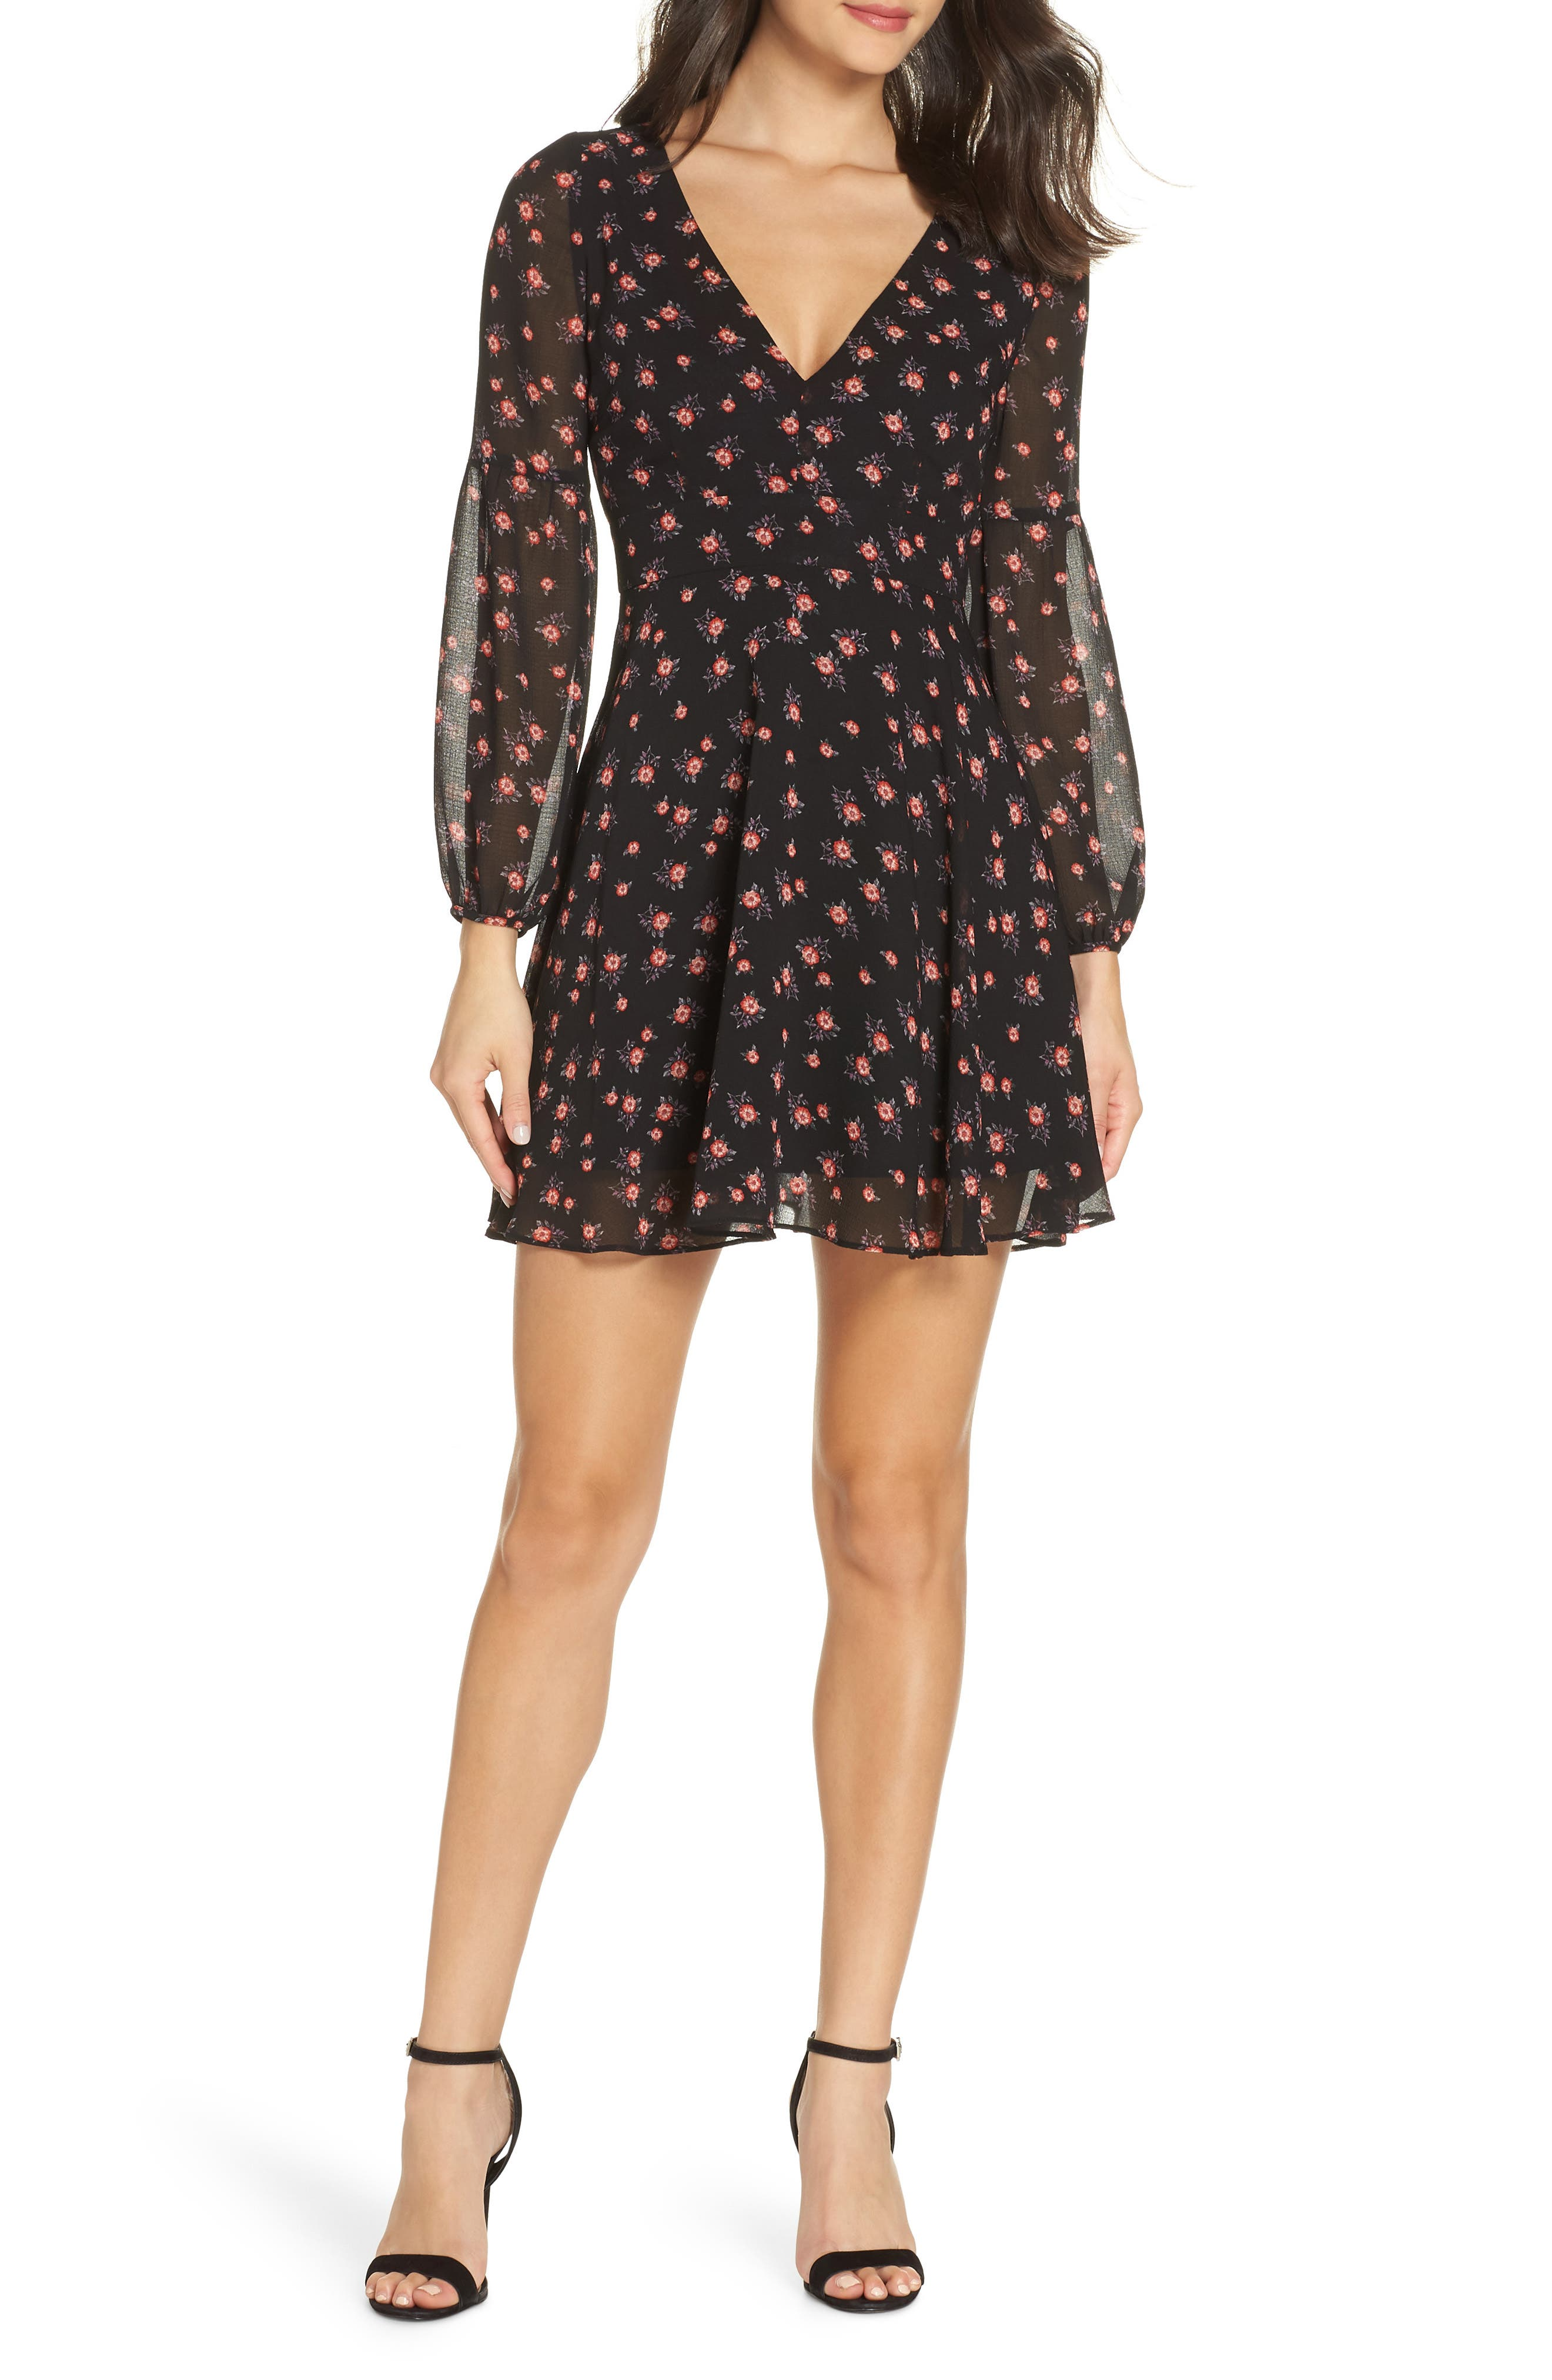 BB DAKOTA Love In The Afternoon Floral Print Dress in Black